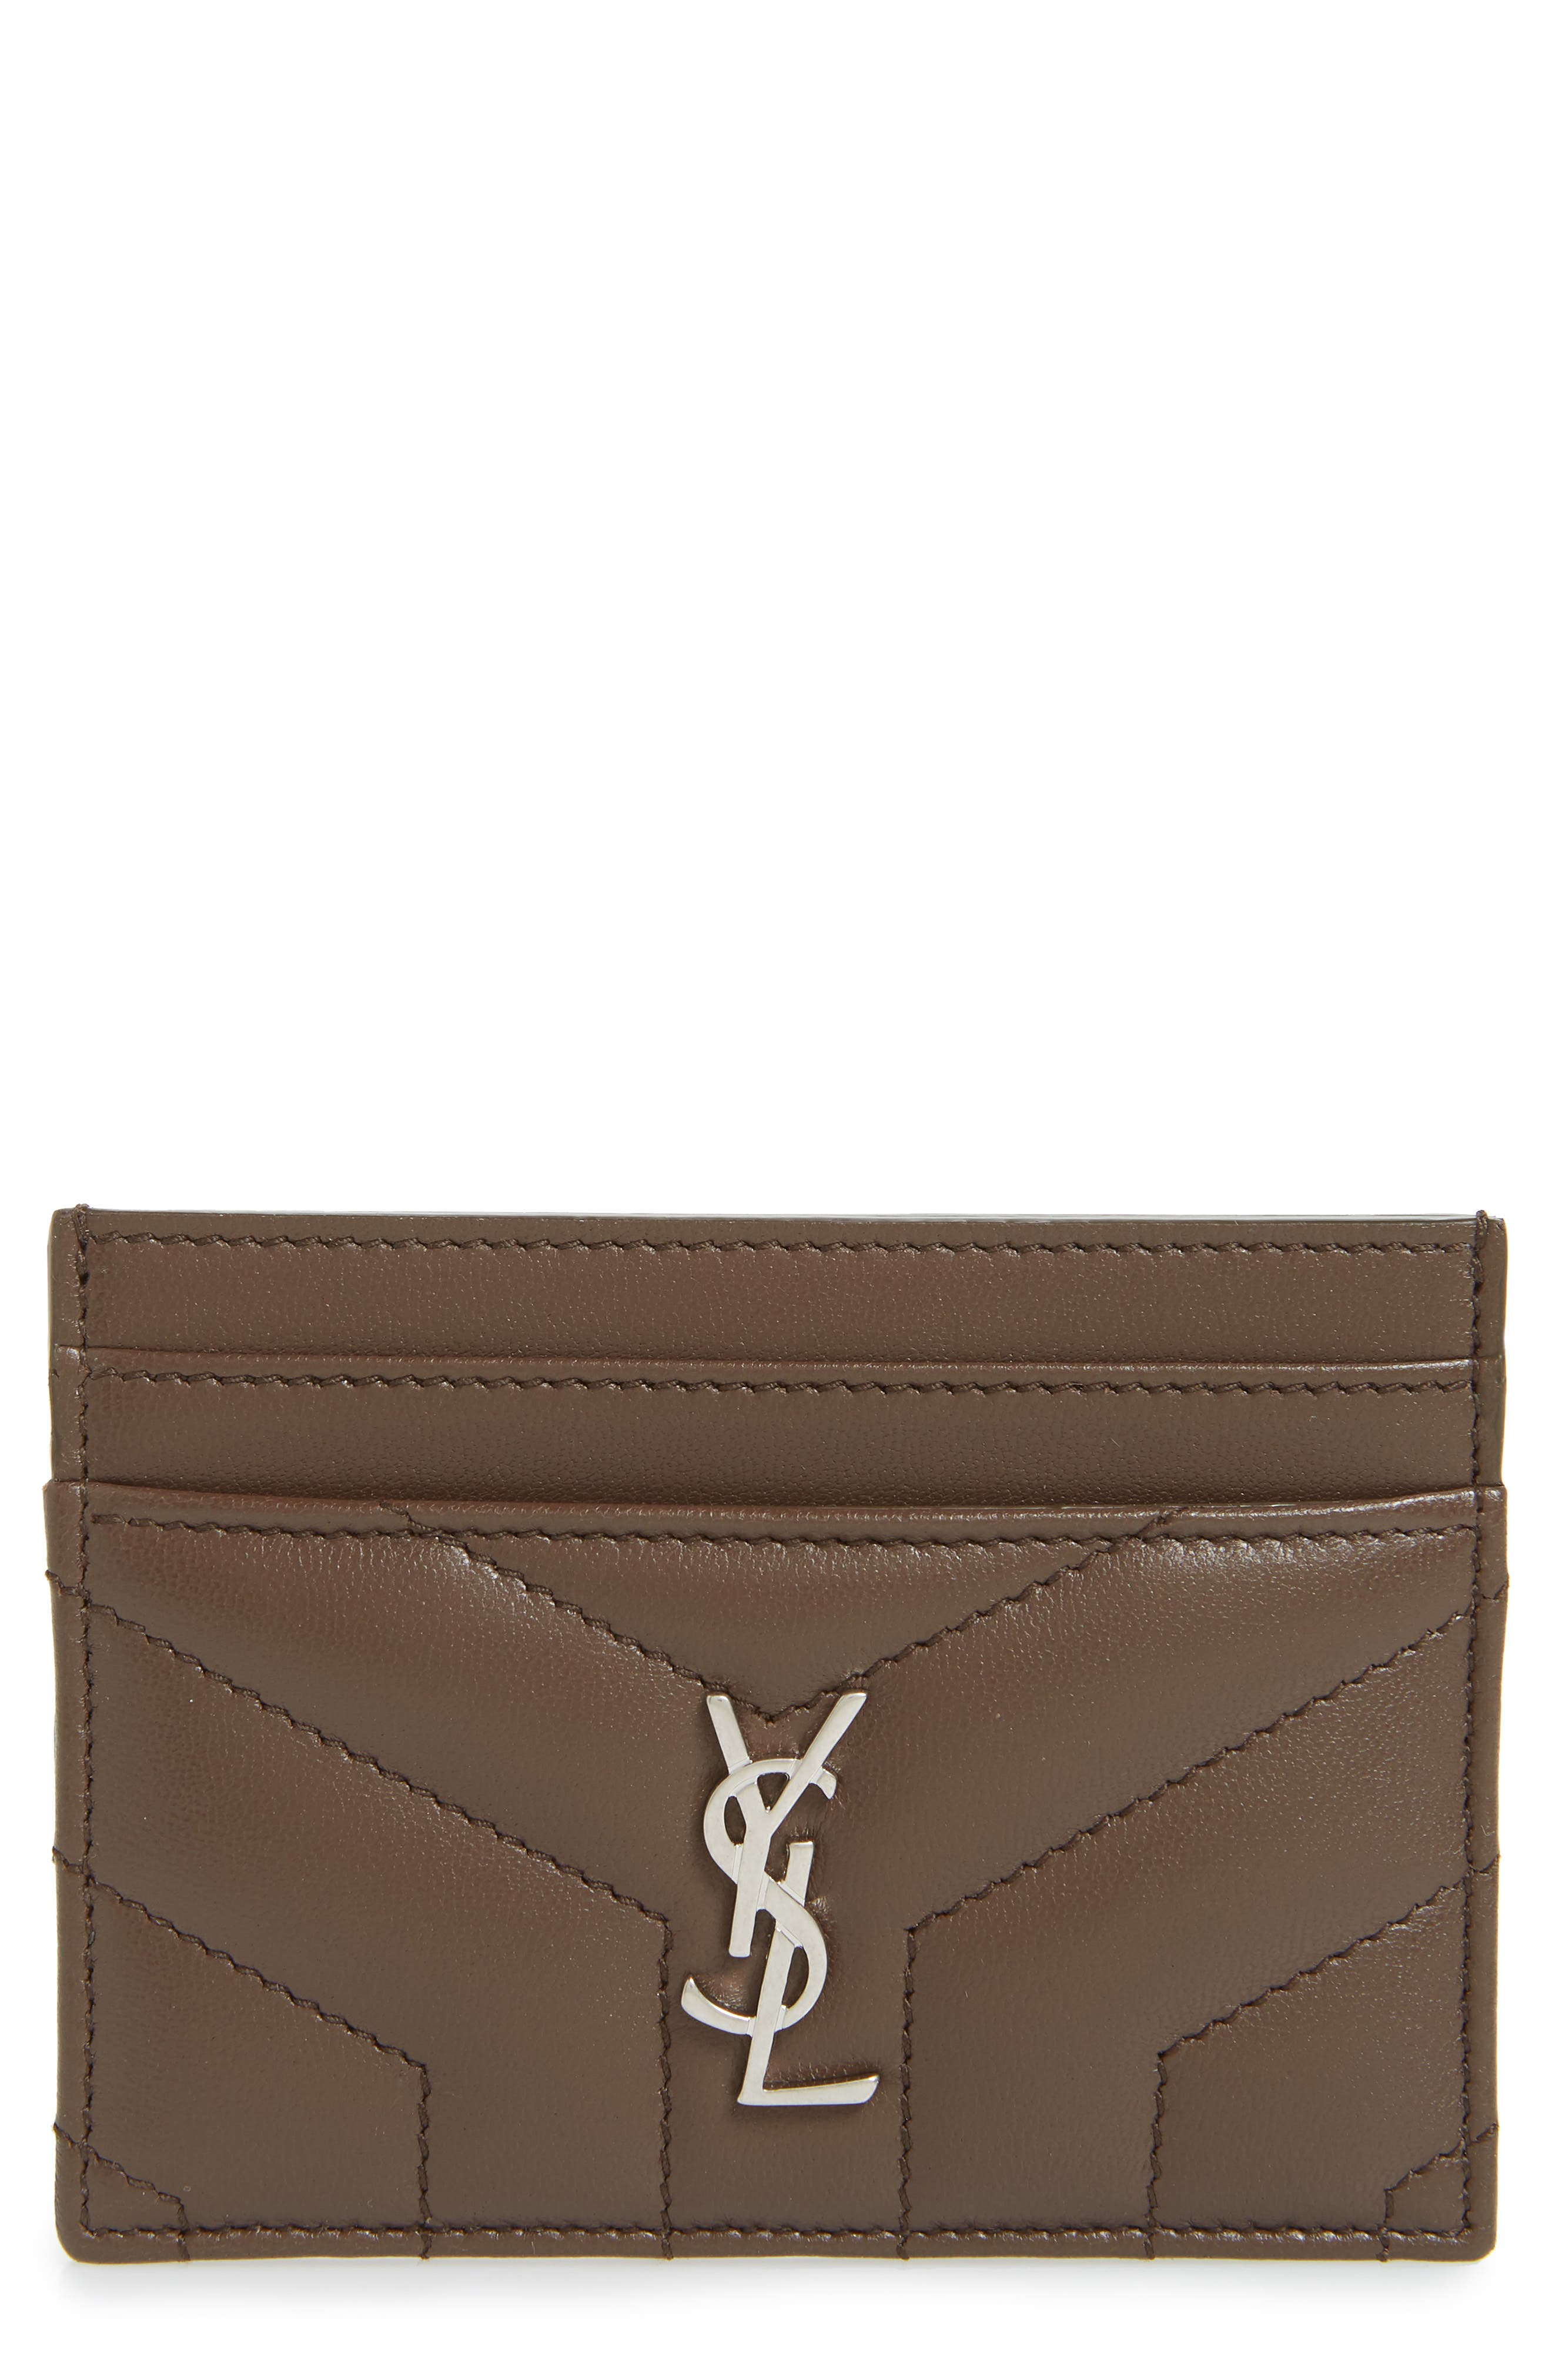 Loulou Monogram Quilted Leather Credit Card Case,                             Main thumbnail 1, color,                             FAGGIO